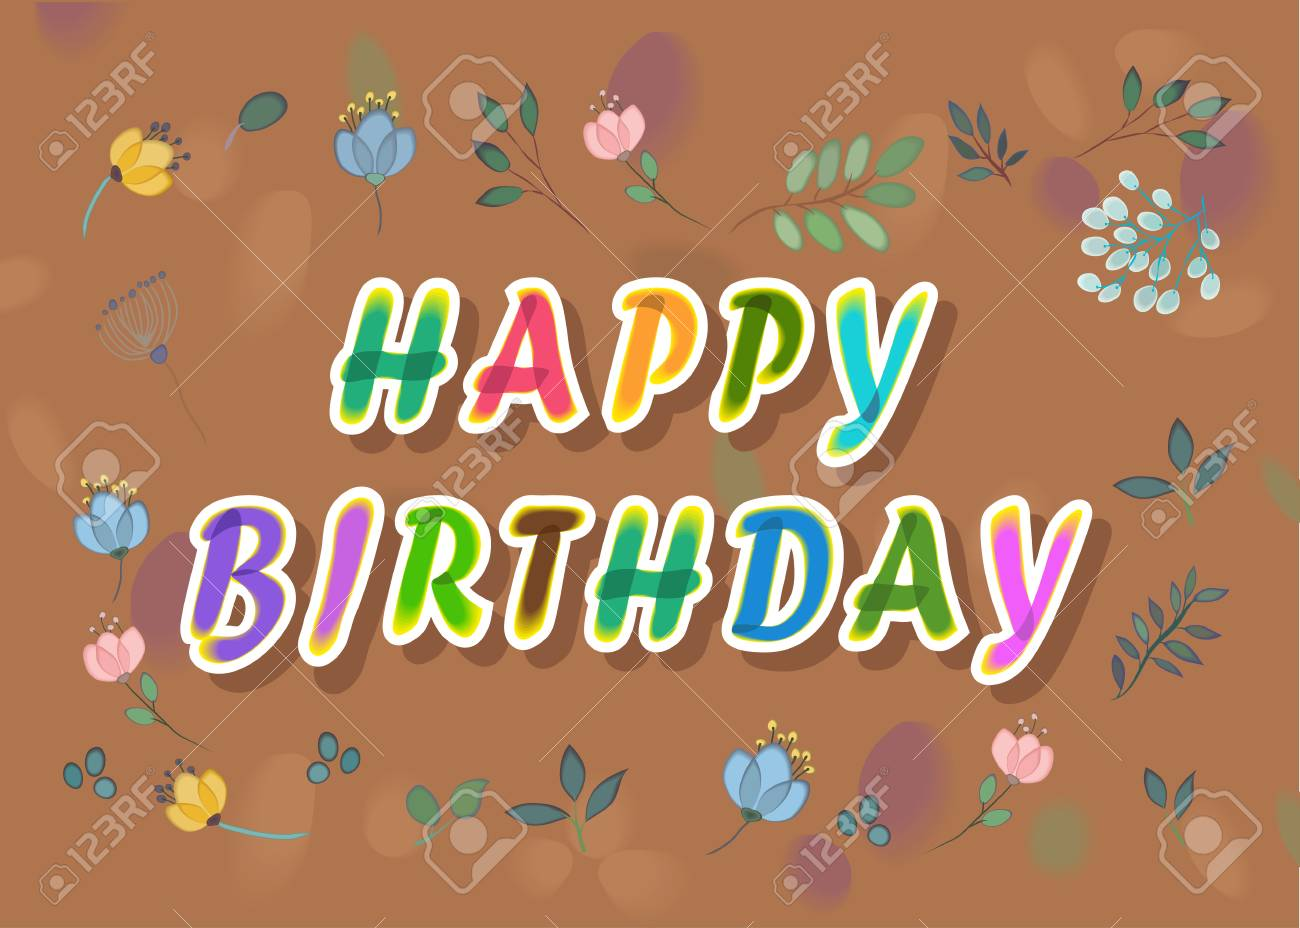 happy birthday floral card artistic font watercolor letters brown background with watercolor